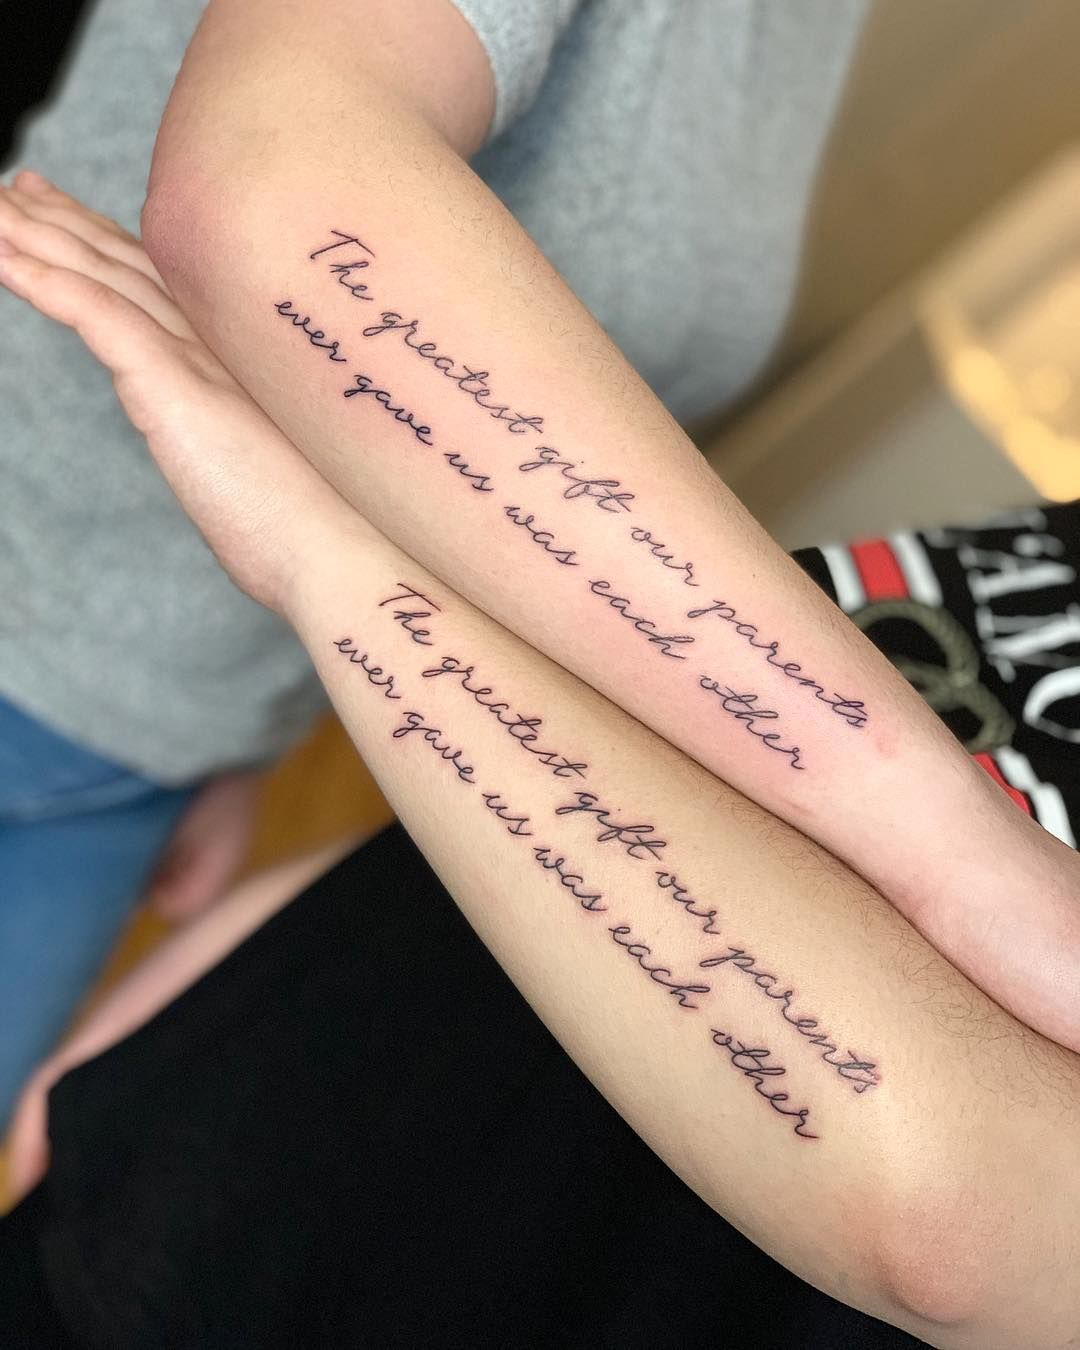 60 BrotherSister Tattoos For Siblings Who Are the Best of